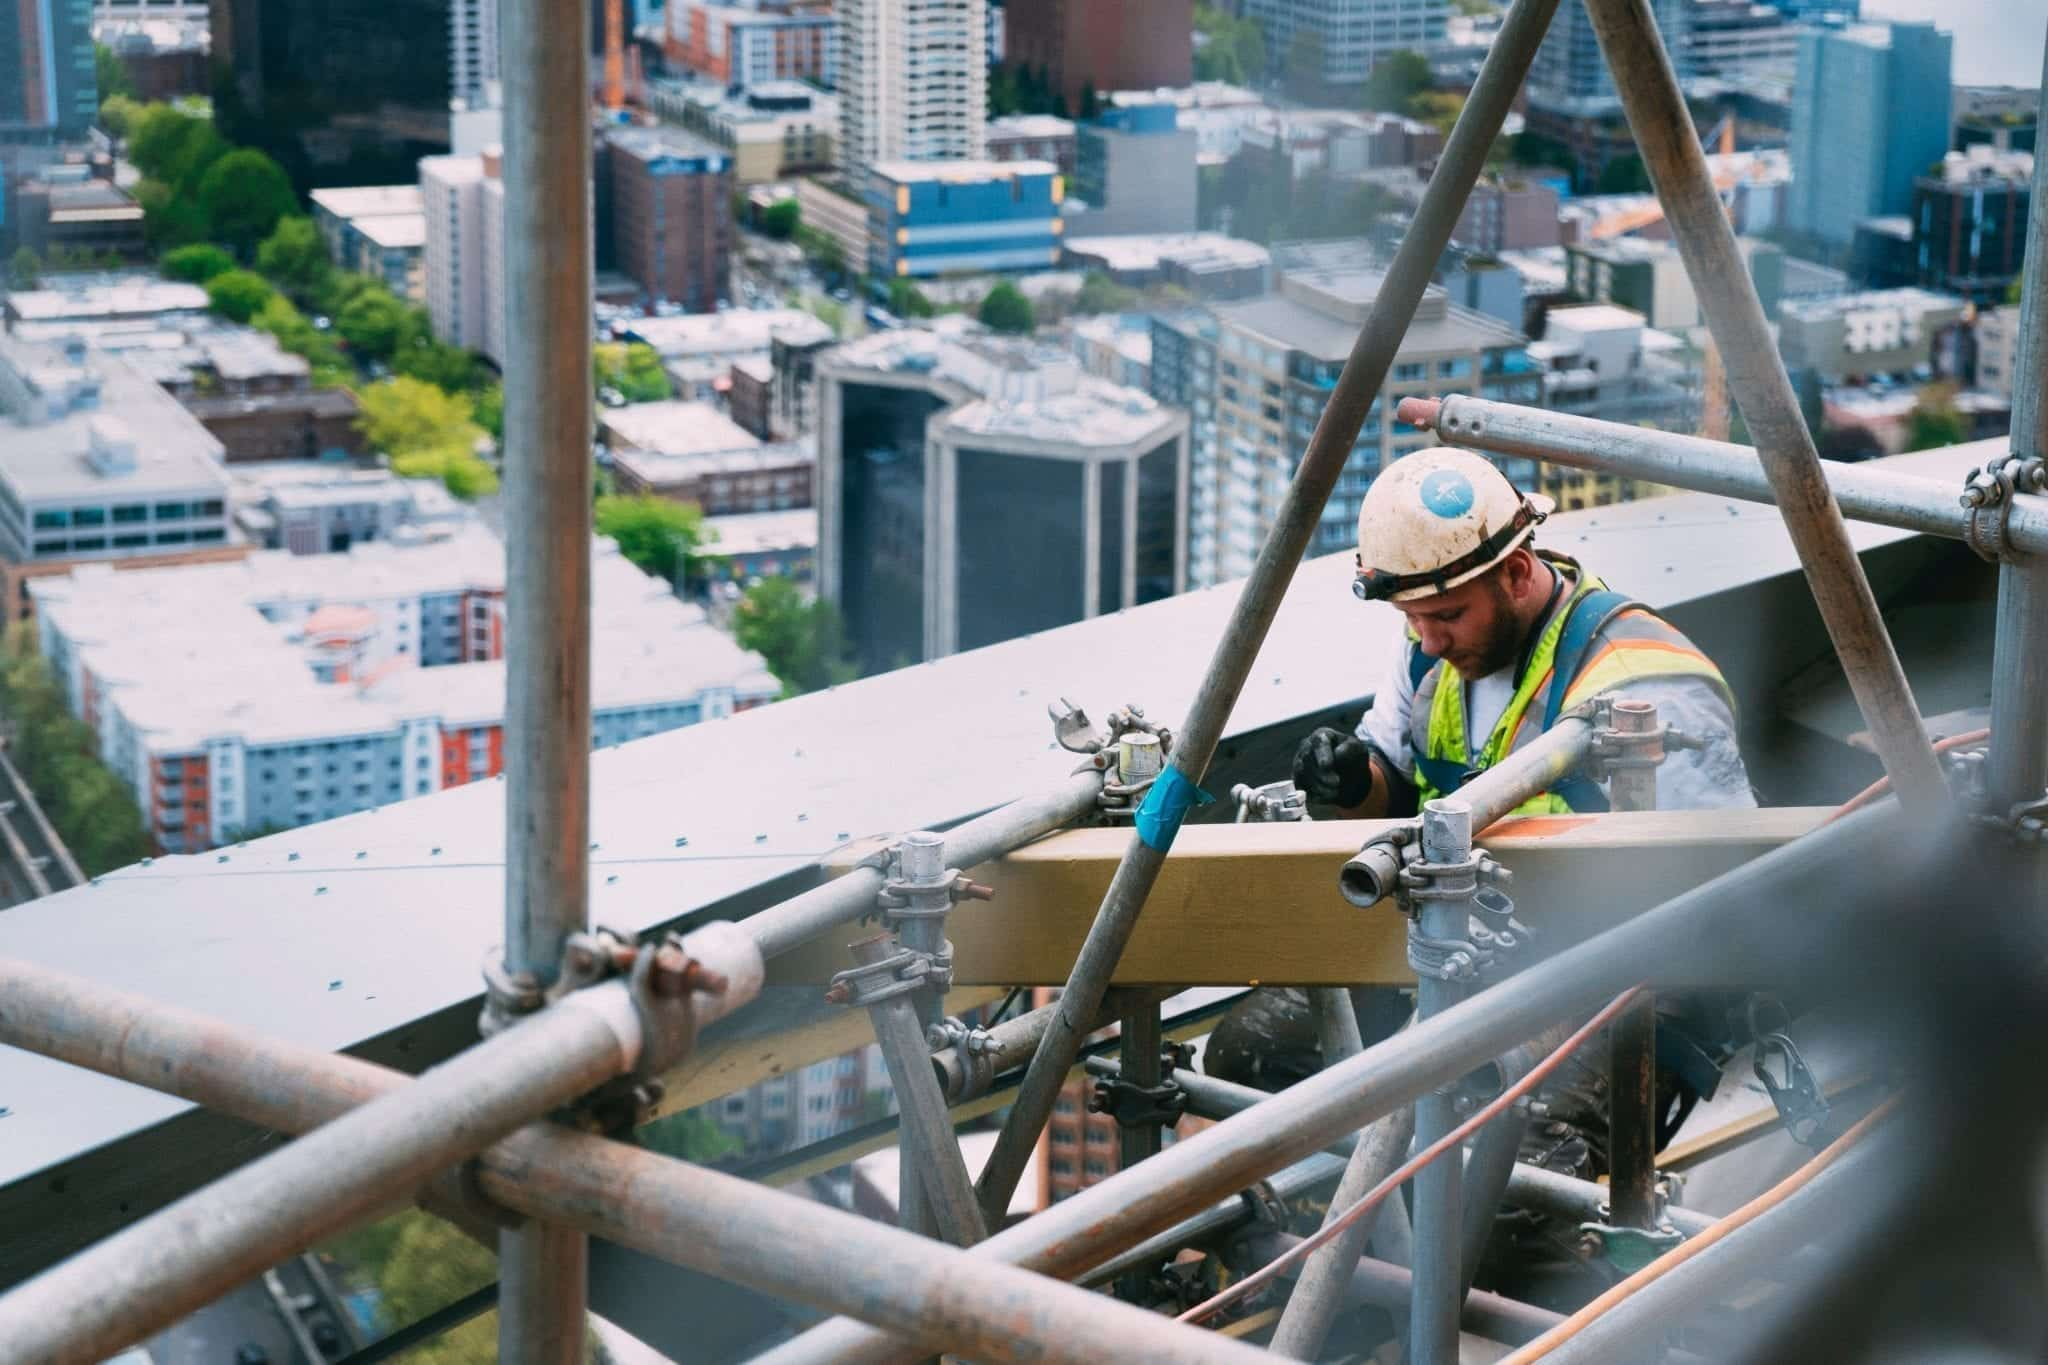 Survey Indicates Construction Workers at High Risk of Opioid-related Deaths